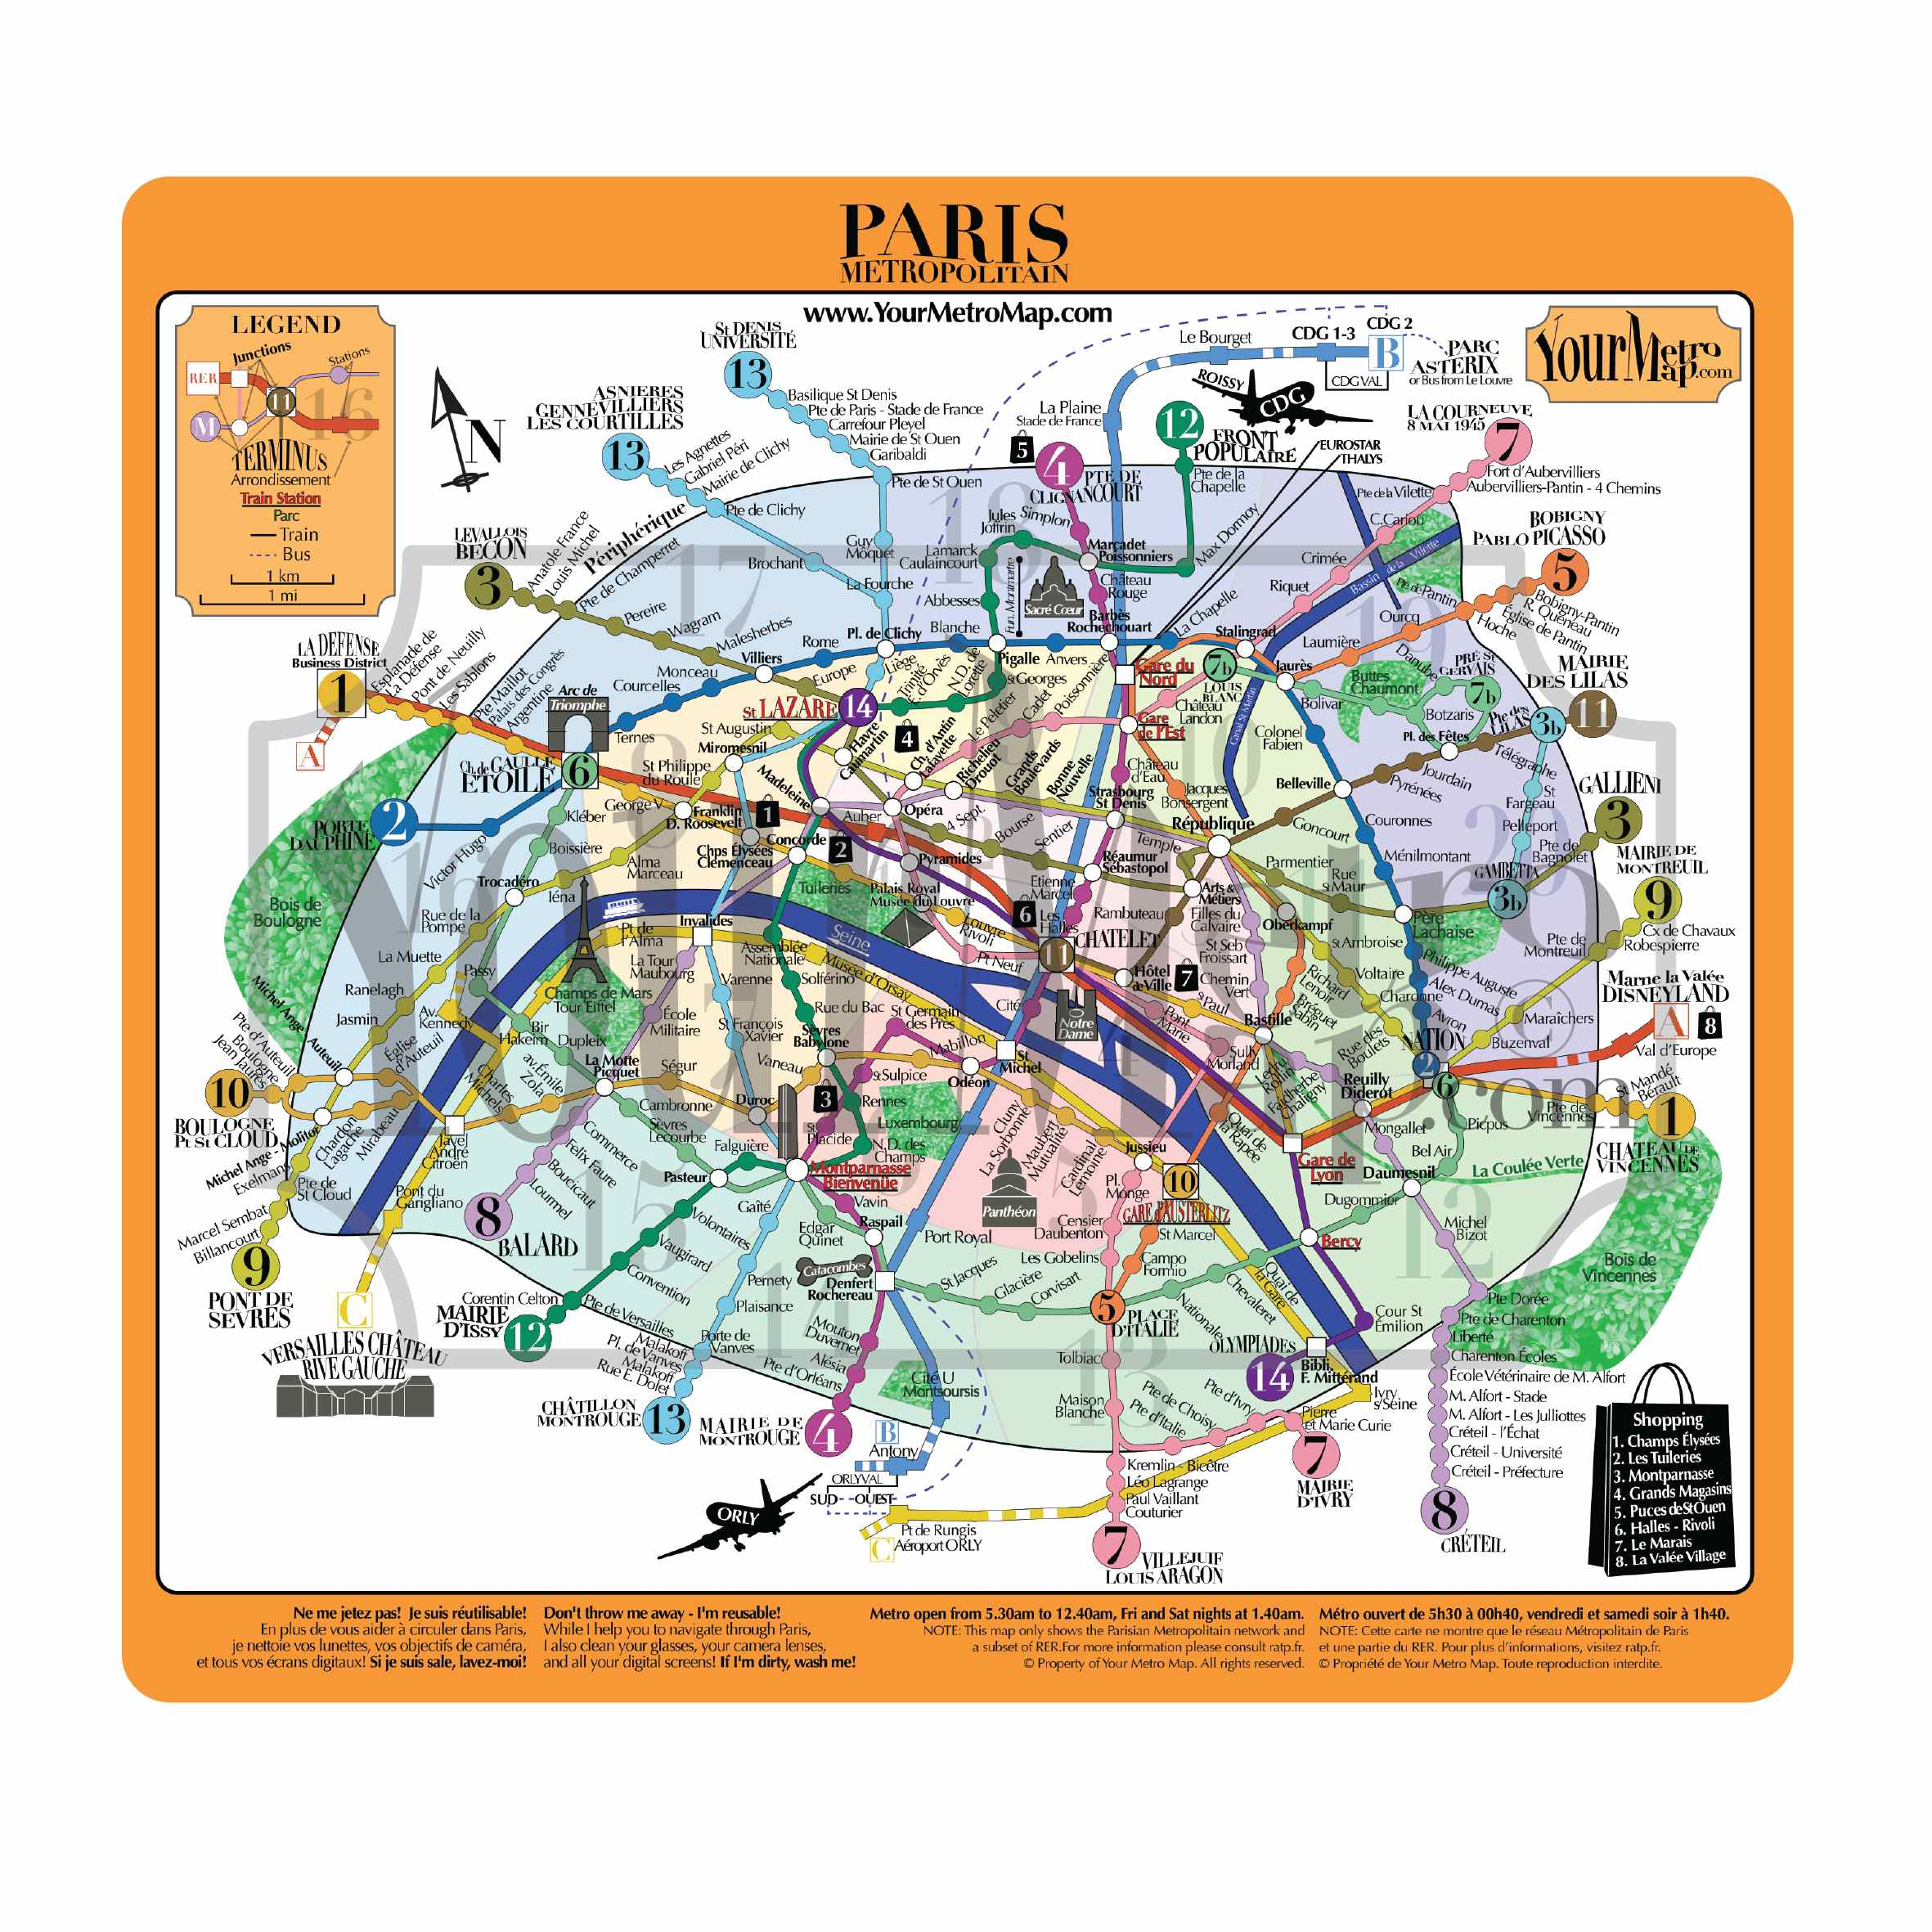 Carte plan de m tro paris tissu microfibre haute qualit for Paris carte touristique